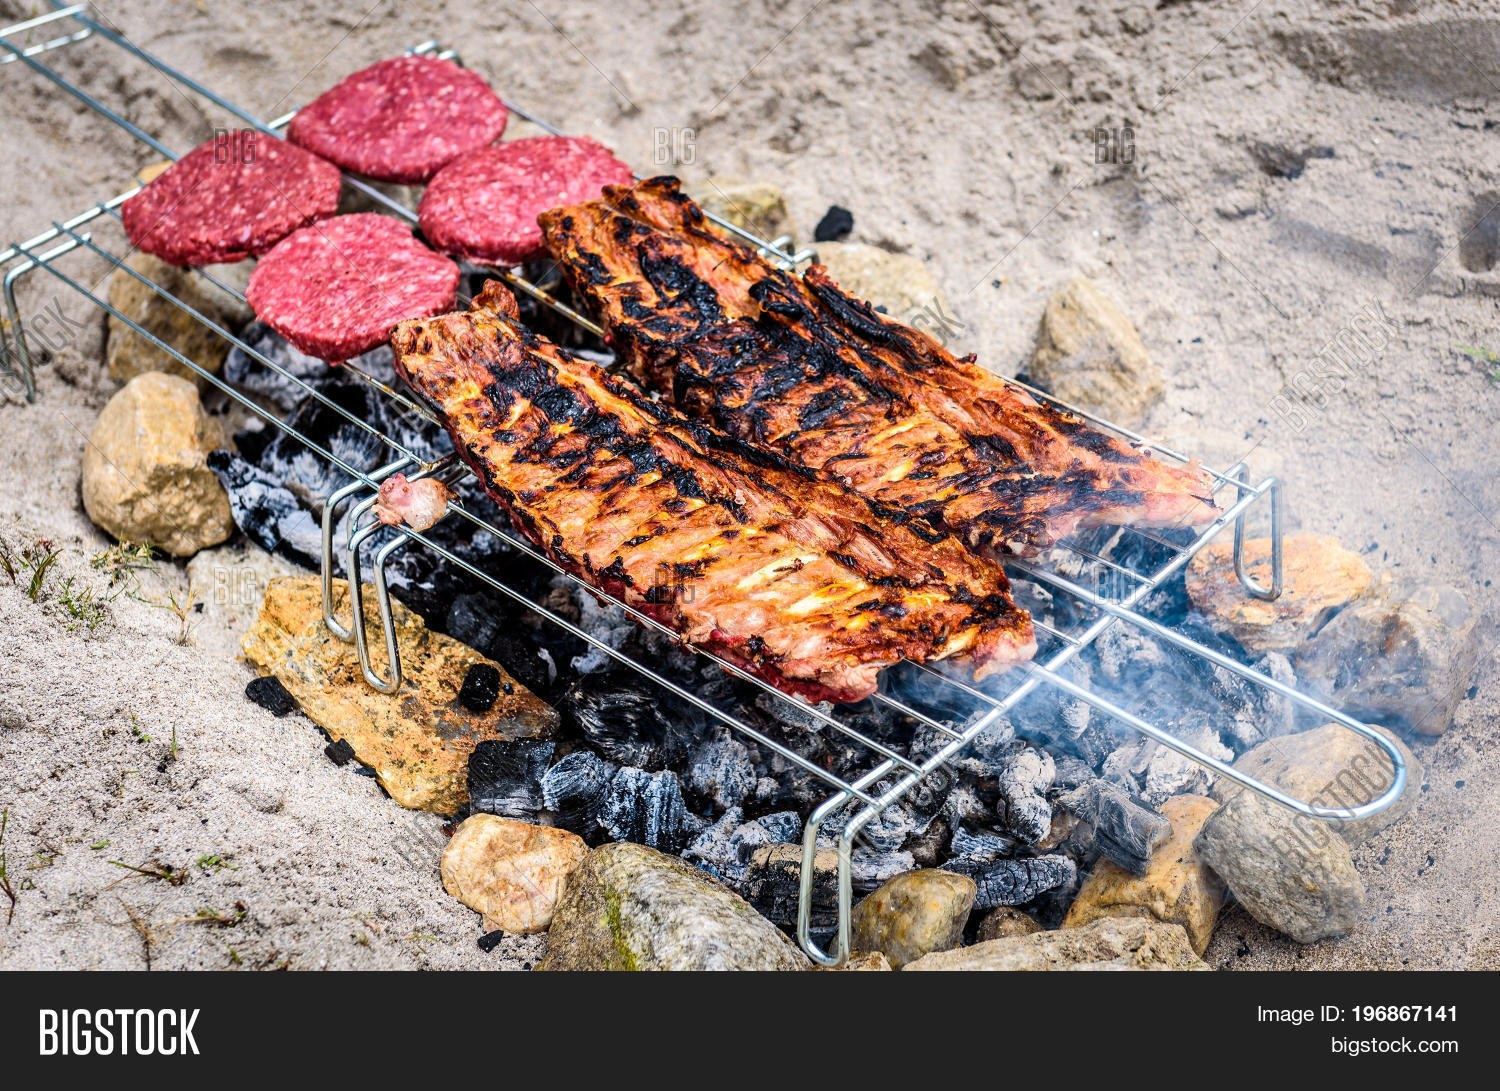 Pork Ribs Burgers On Image Photo Free Trial Bigstock